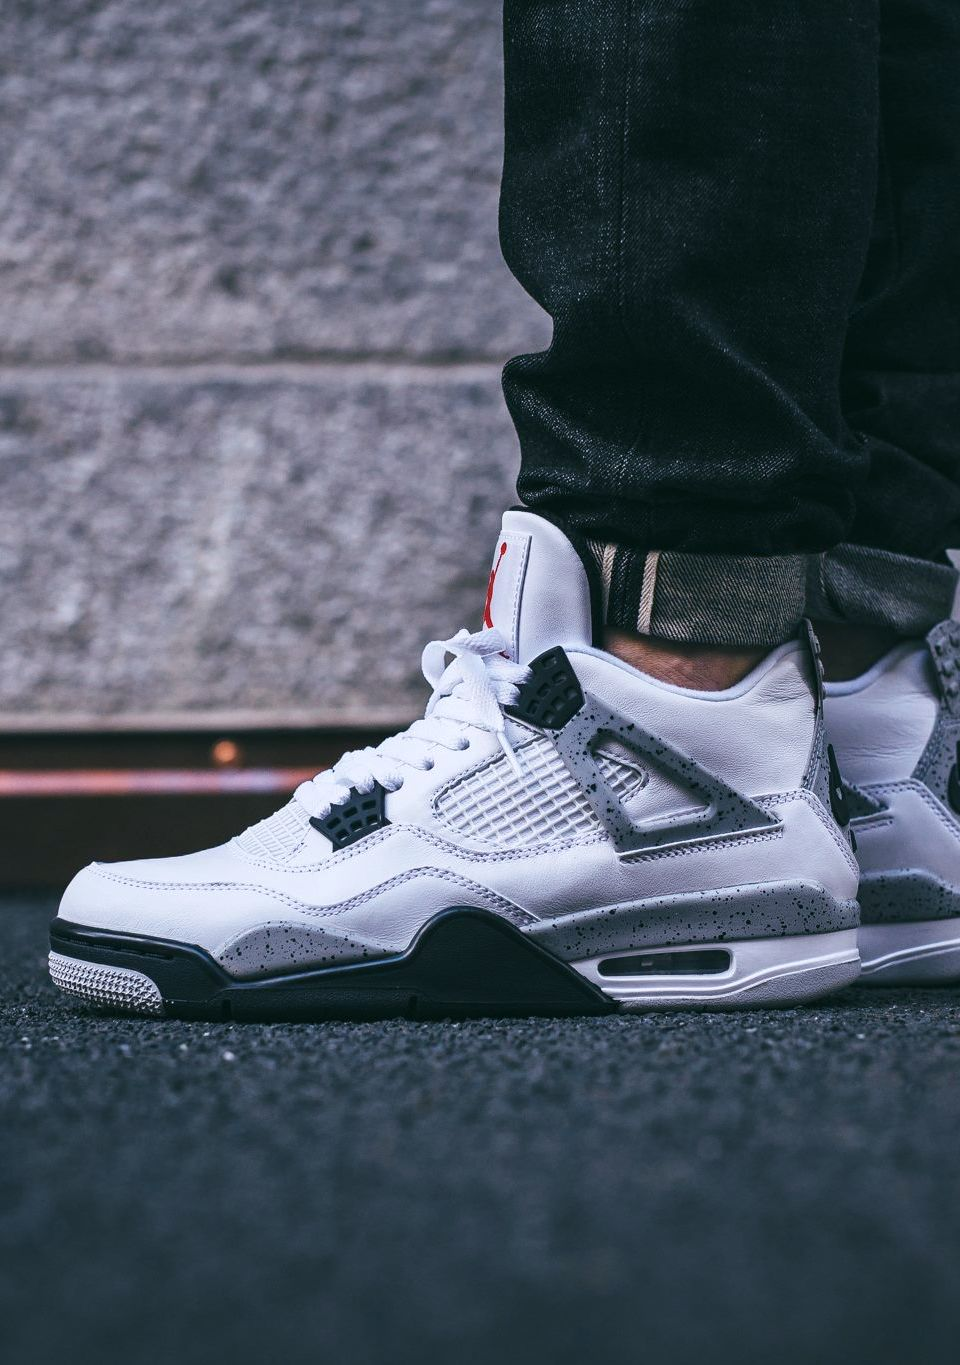 timeless design 7c5c2 fced2 Nike Air Jordan 4 Retro OG  Cement  (via Kicks-daily.com)